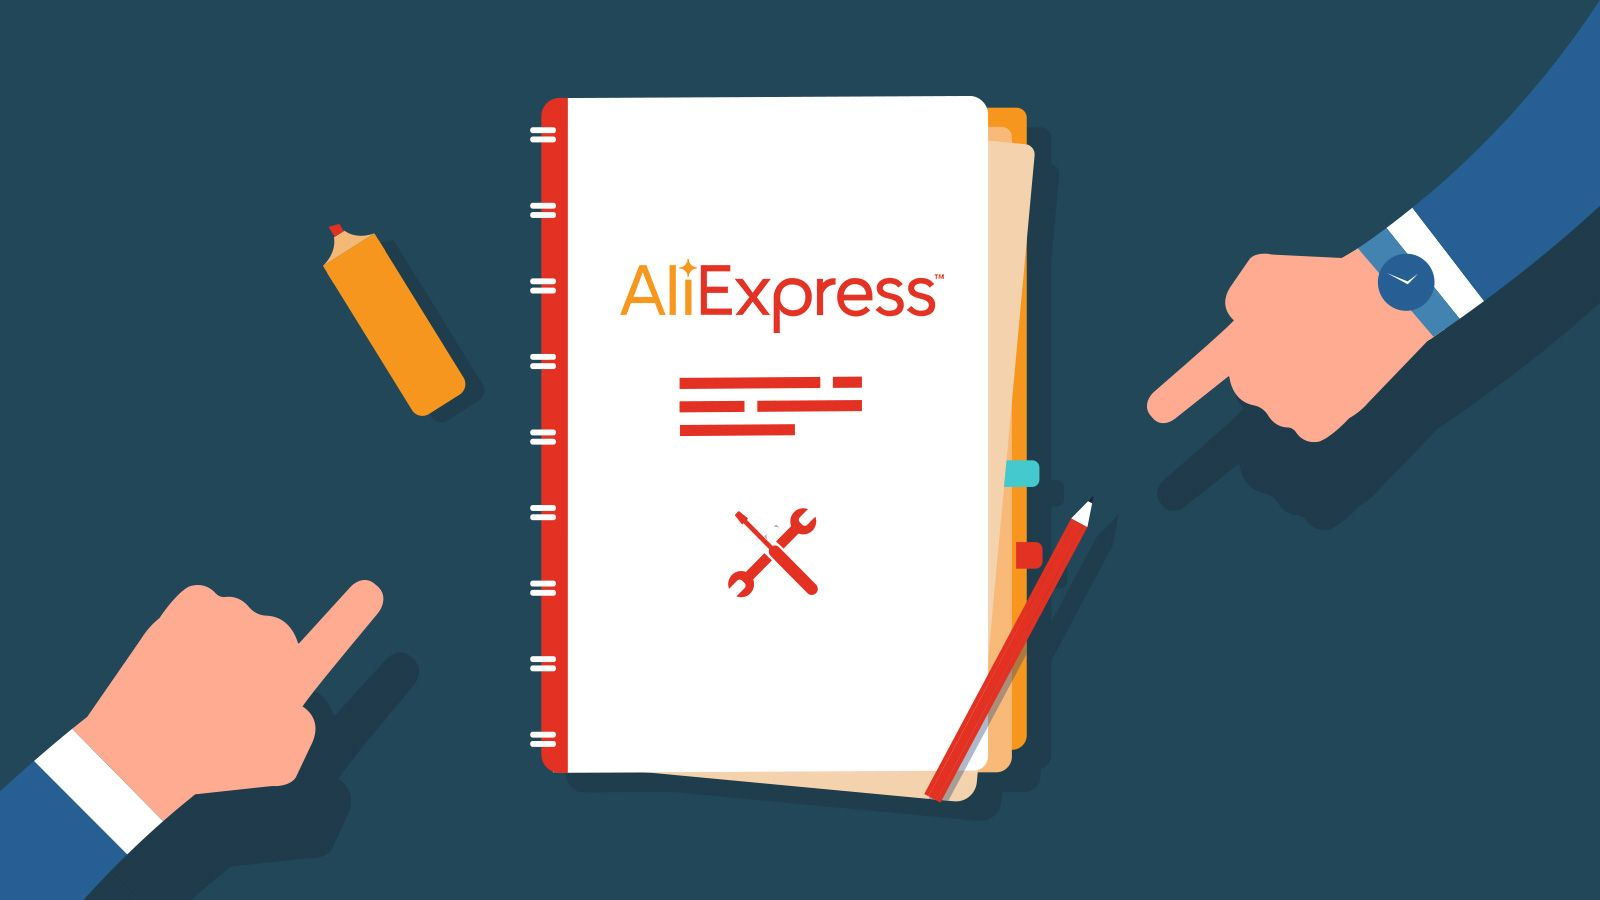 Is AliExpress Safe? 6 Tips to Avoid Scams